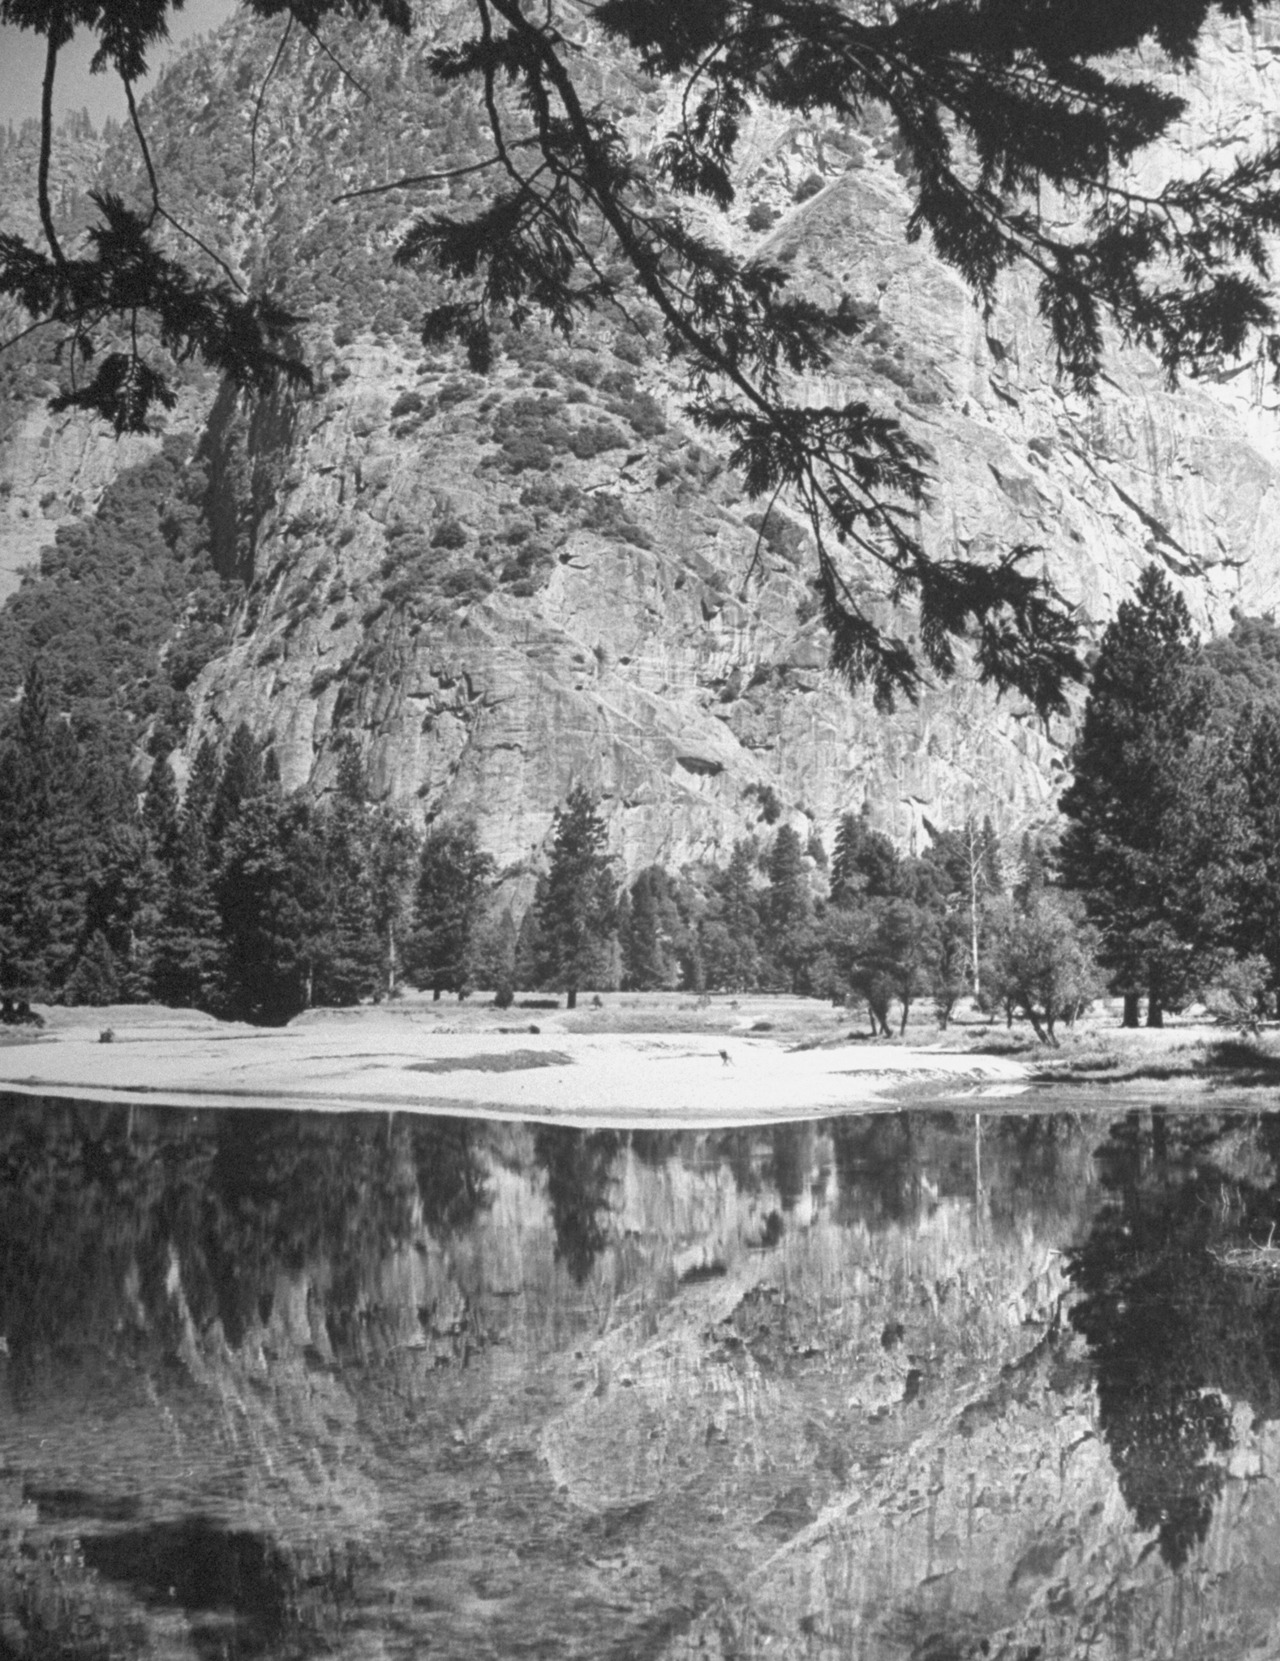 life:  On this day in 1890, Yosemite National Park was established. Pictured, a mountain reflecting off a stream in Yosemite National park by LIFE's Nina Leen.  Don't forget the MORE PARKS poster is still available in the STORE.